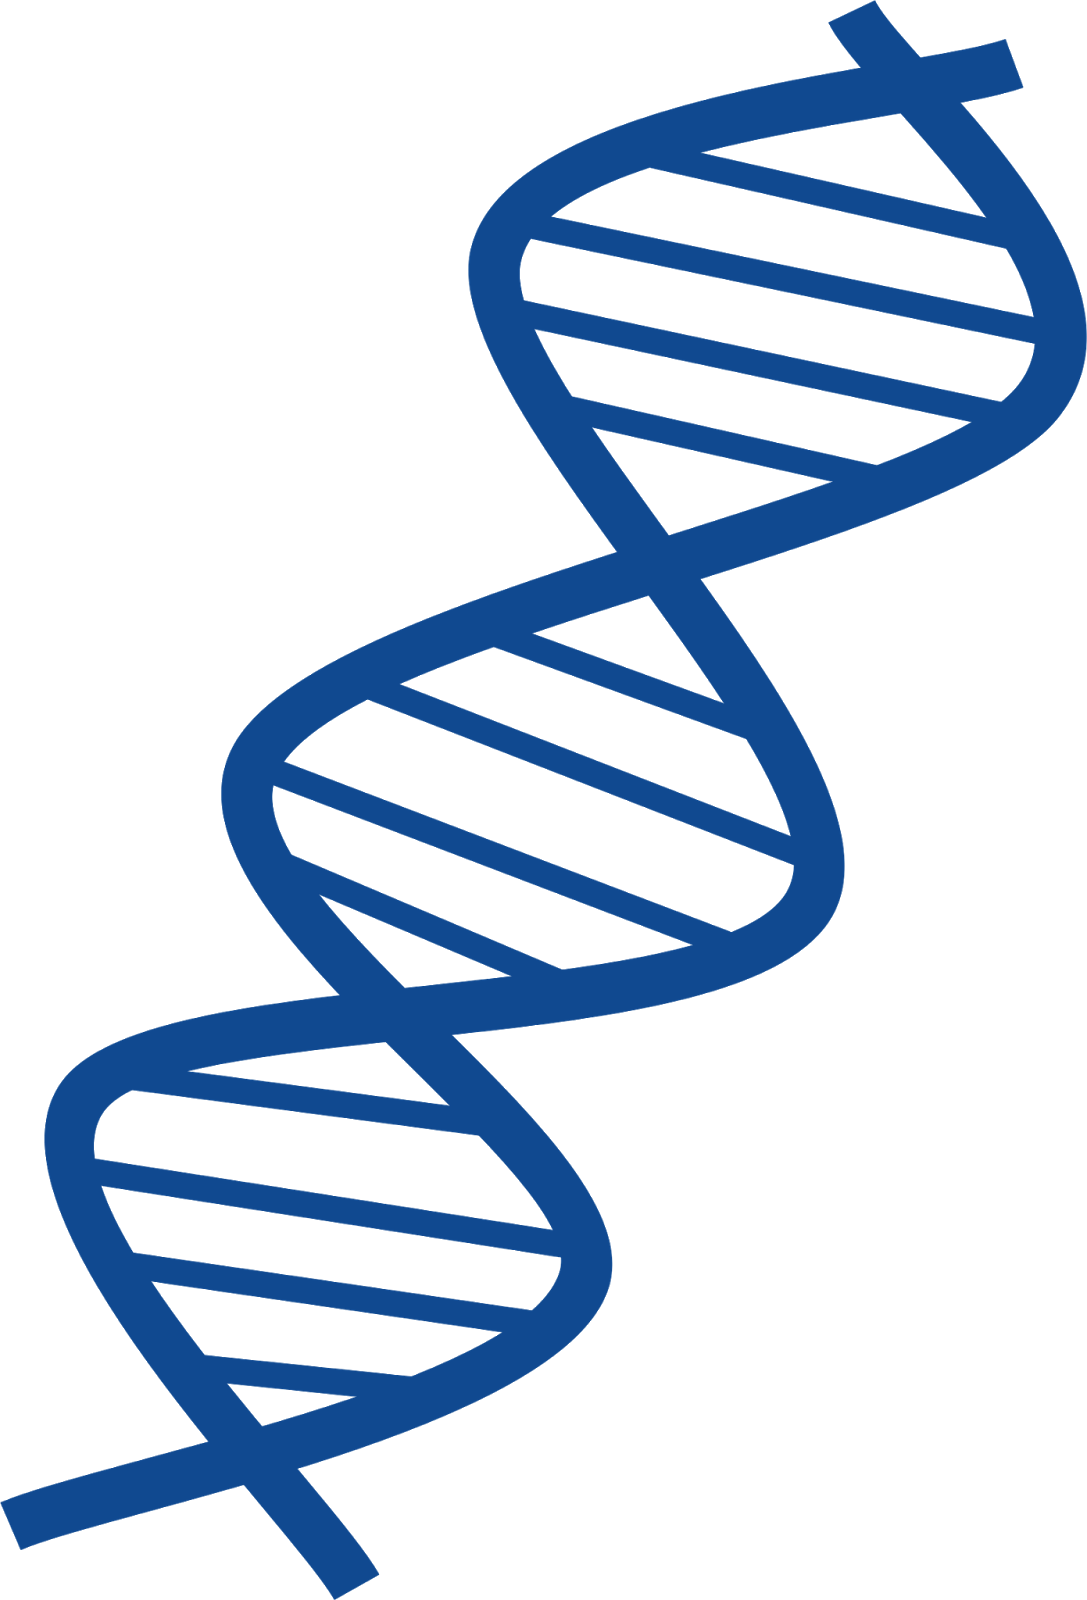 Thin and Blue Dna Transparent Image